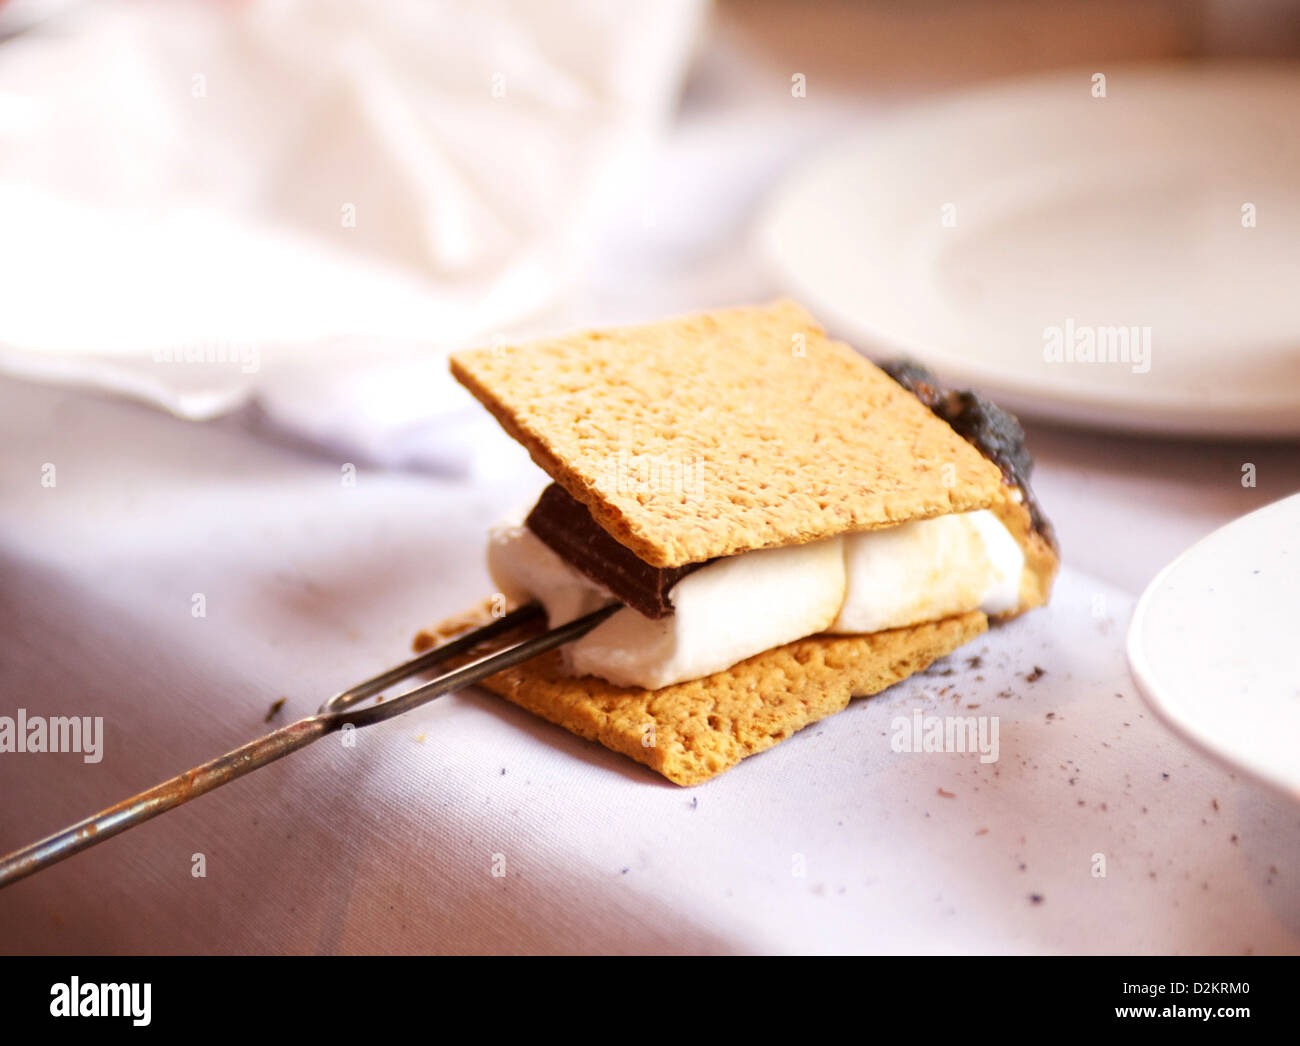 S'mores. Graham cracker, chocolate, and marshmallow, roasted over a campfire. - Stock Image